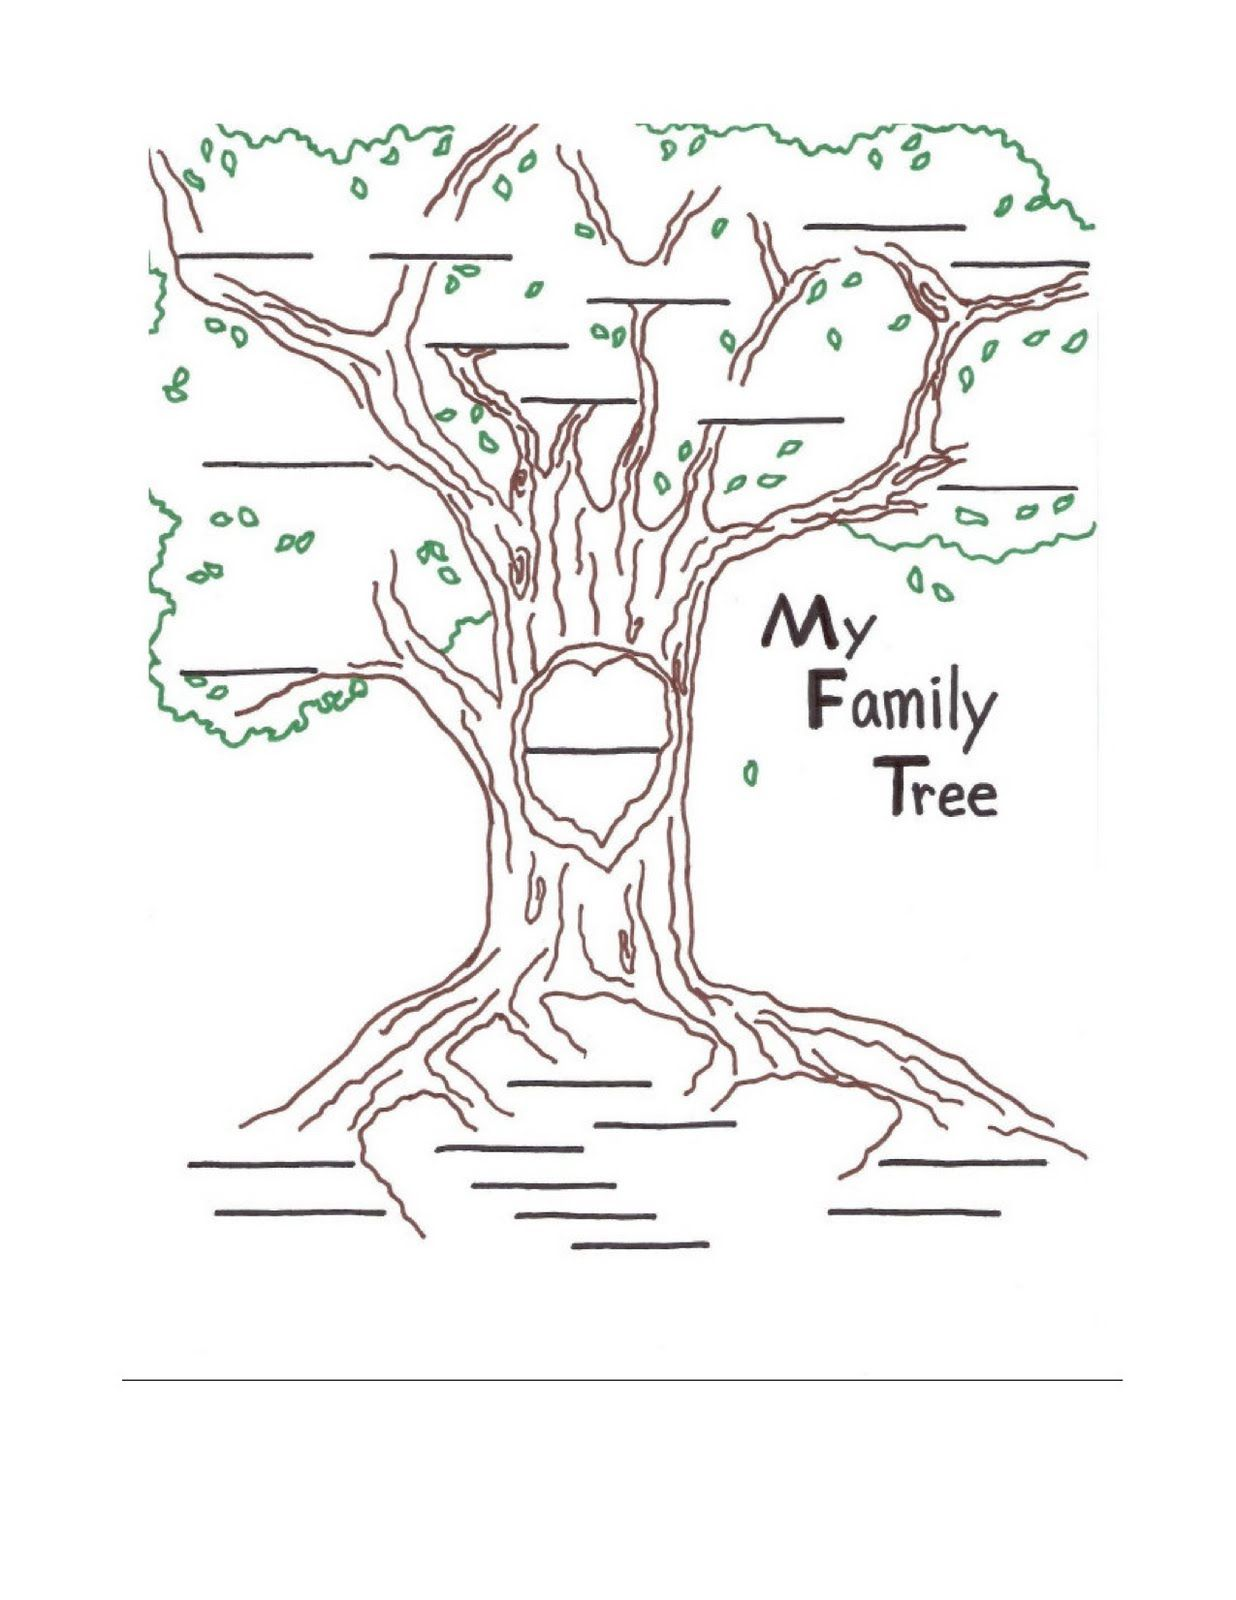 The Rooted Family Tree Where The Roots Represent The